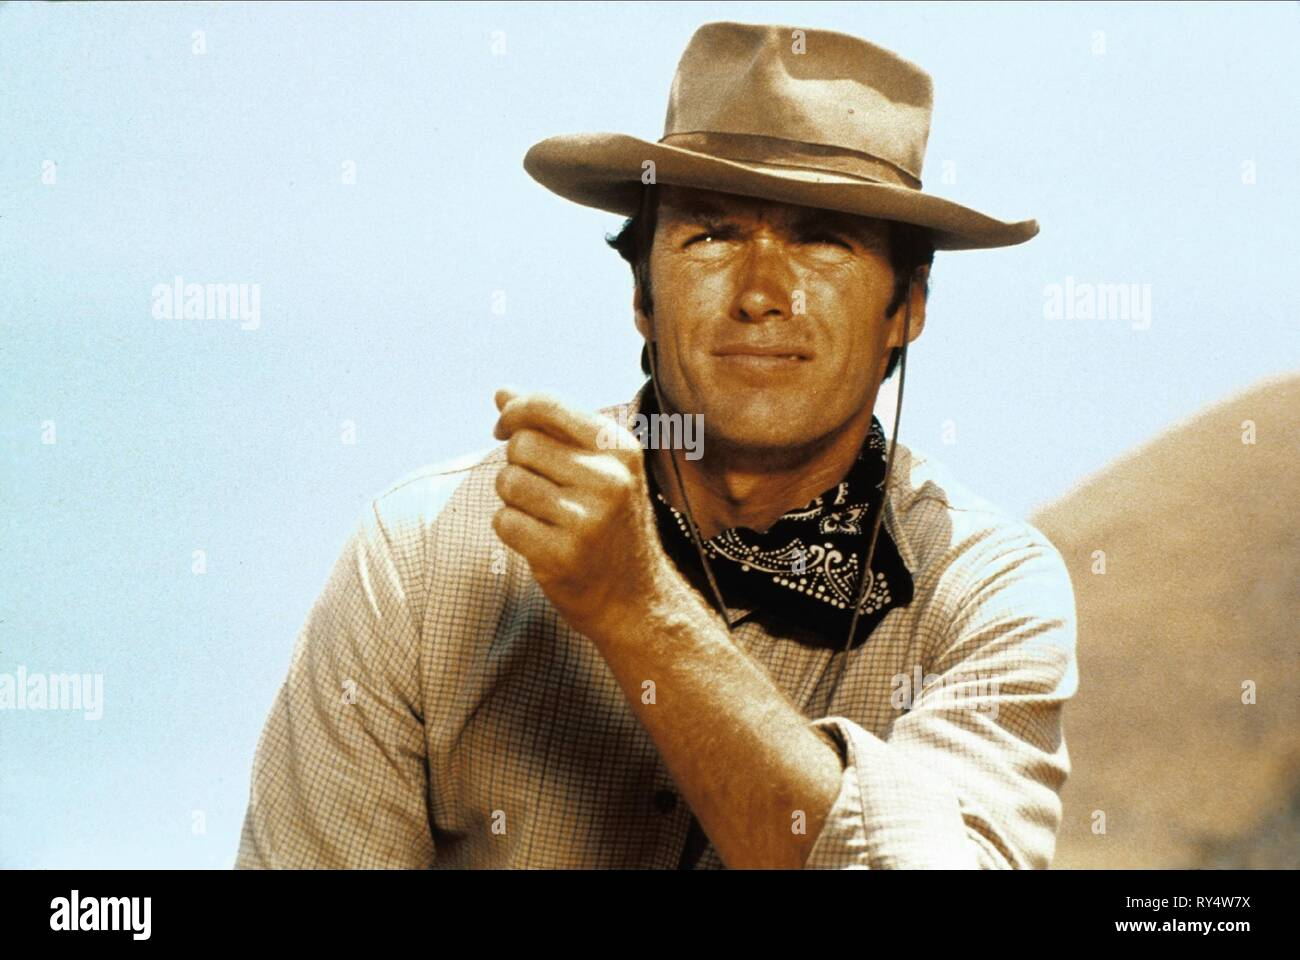 CLINT EASTWOOD, RAWHIDE, 1959 - Stock Image